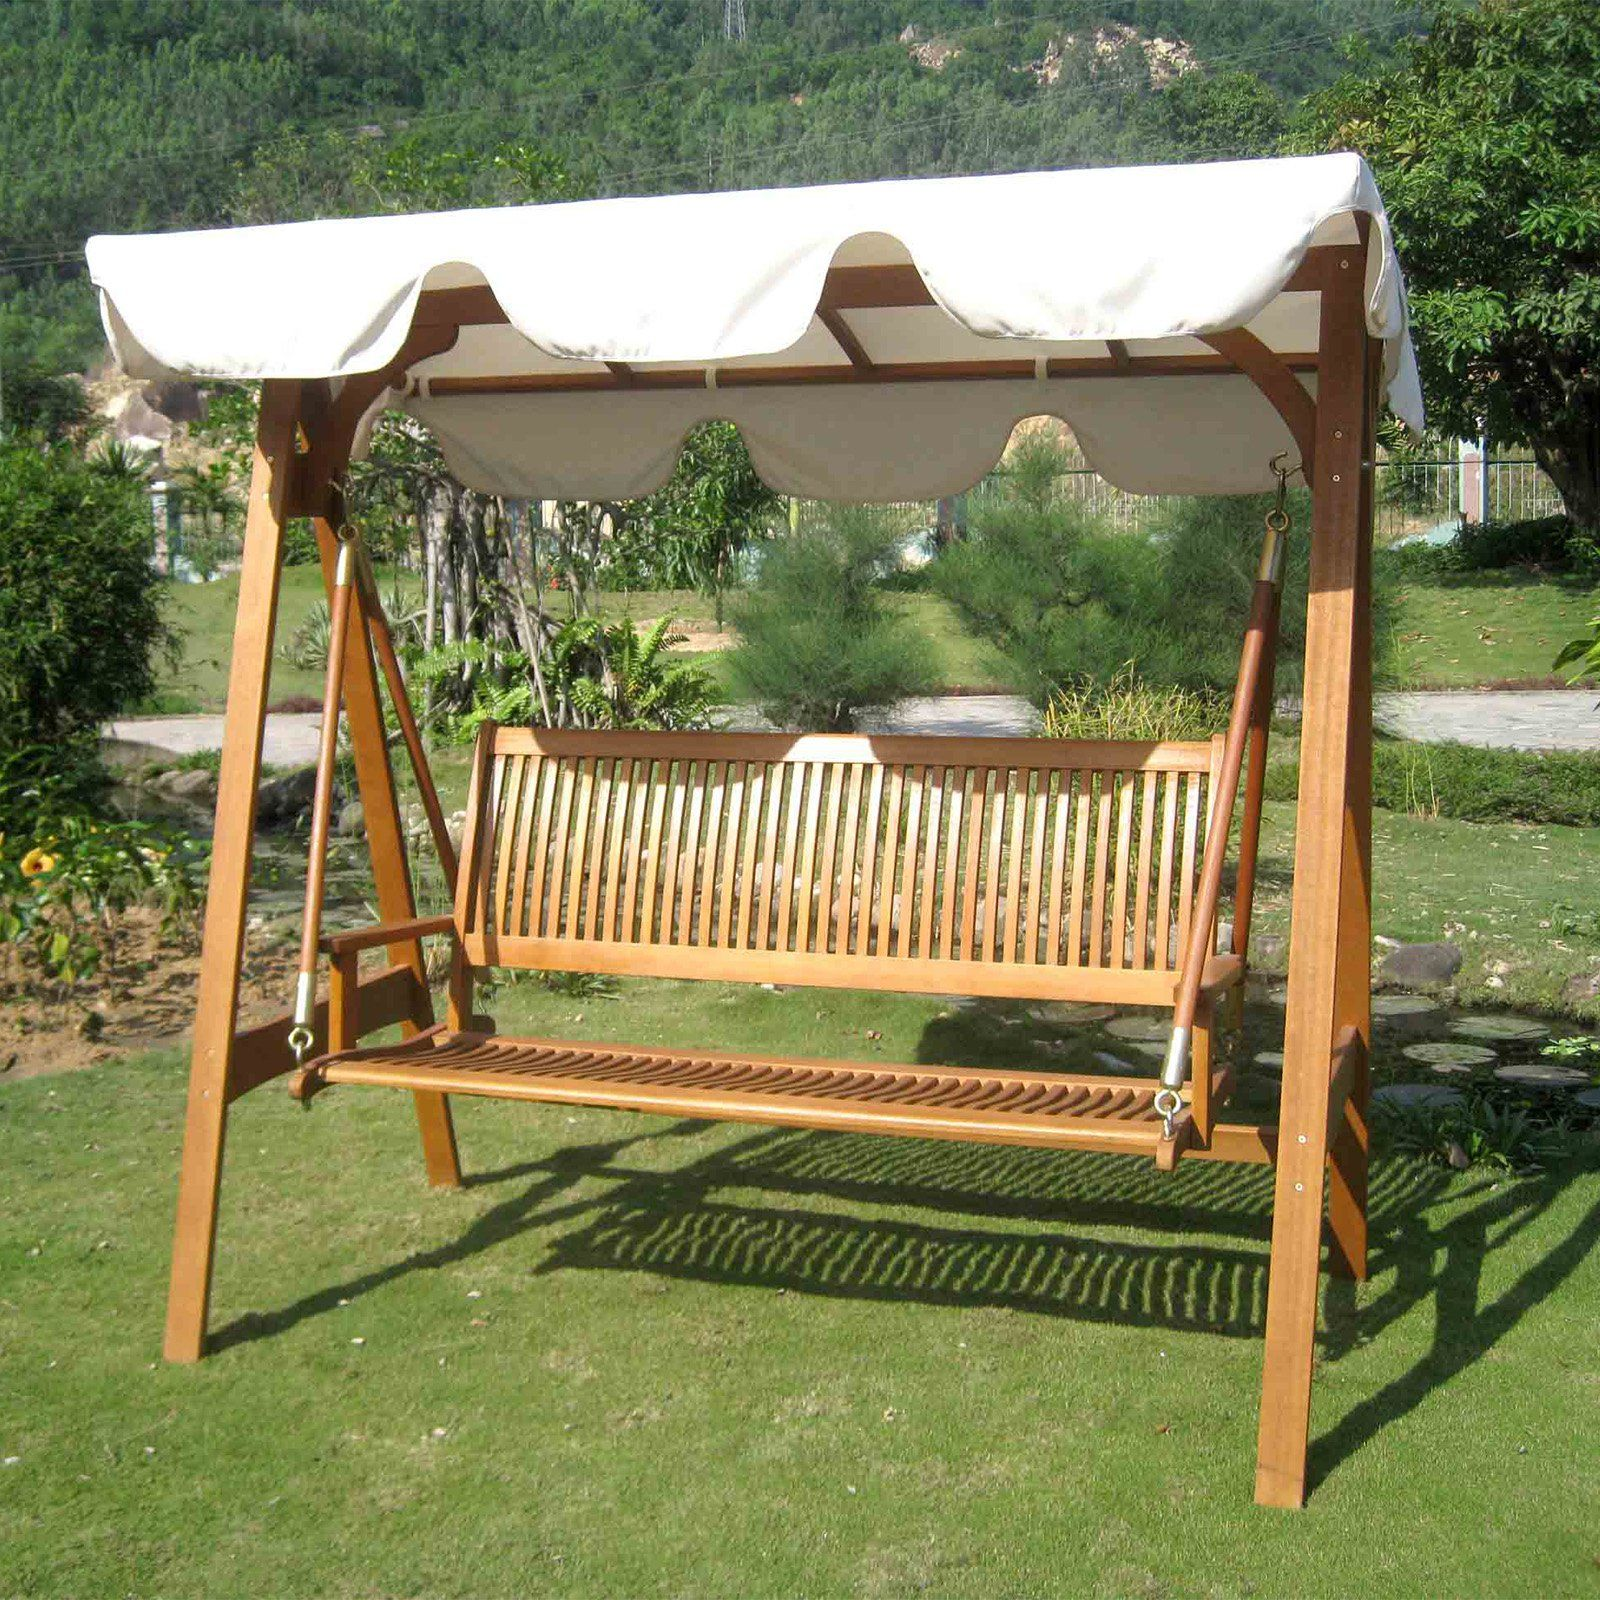 International Caravan Royal Tahiti 3 Seater Patio Swing with Frame and Canopy | from hayneedle.com & International Caravan Royal Tahiti 3 Seater Patio Swing with Frame ...